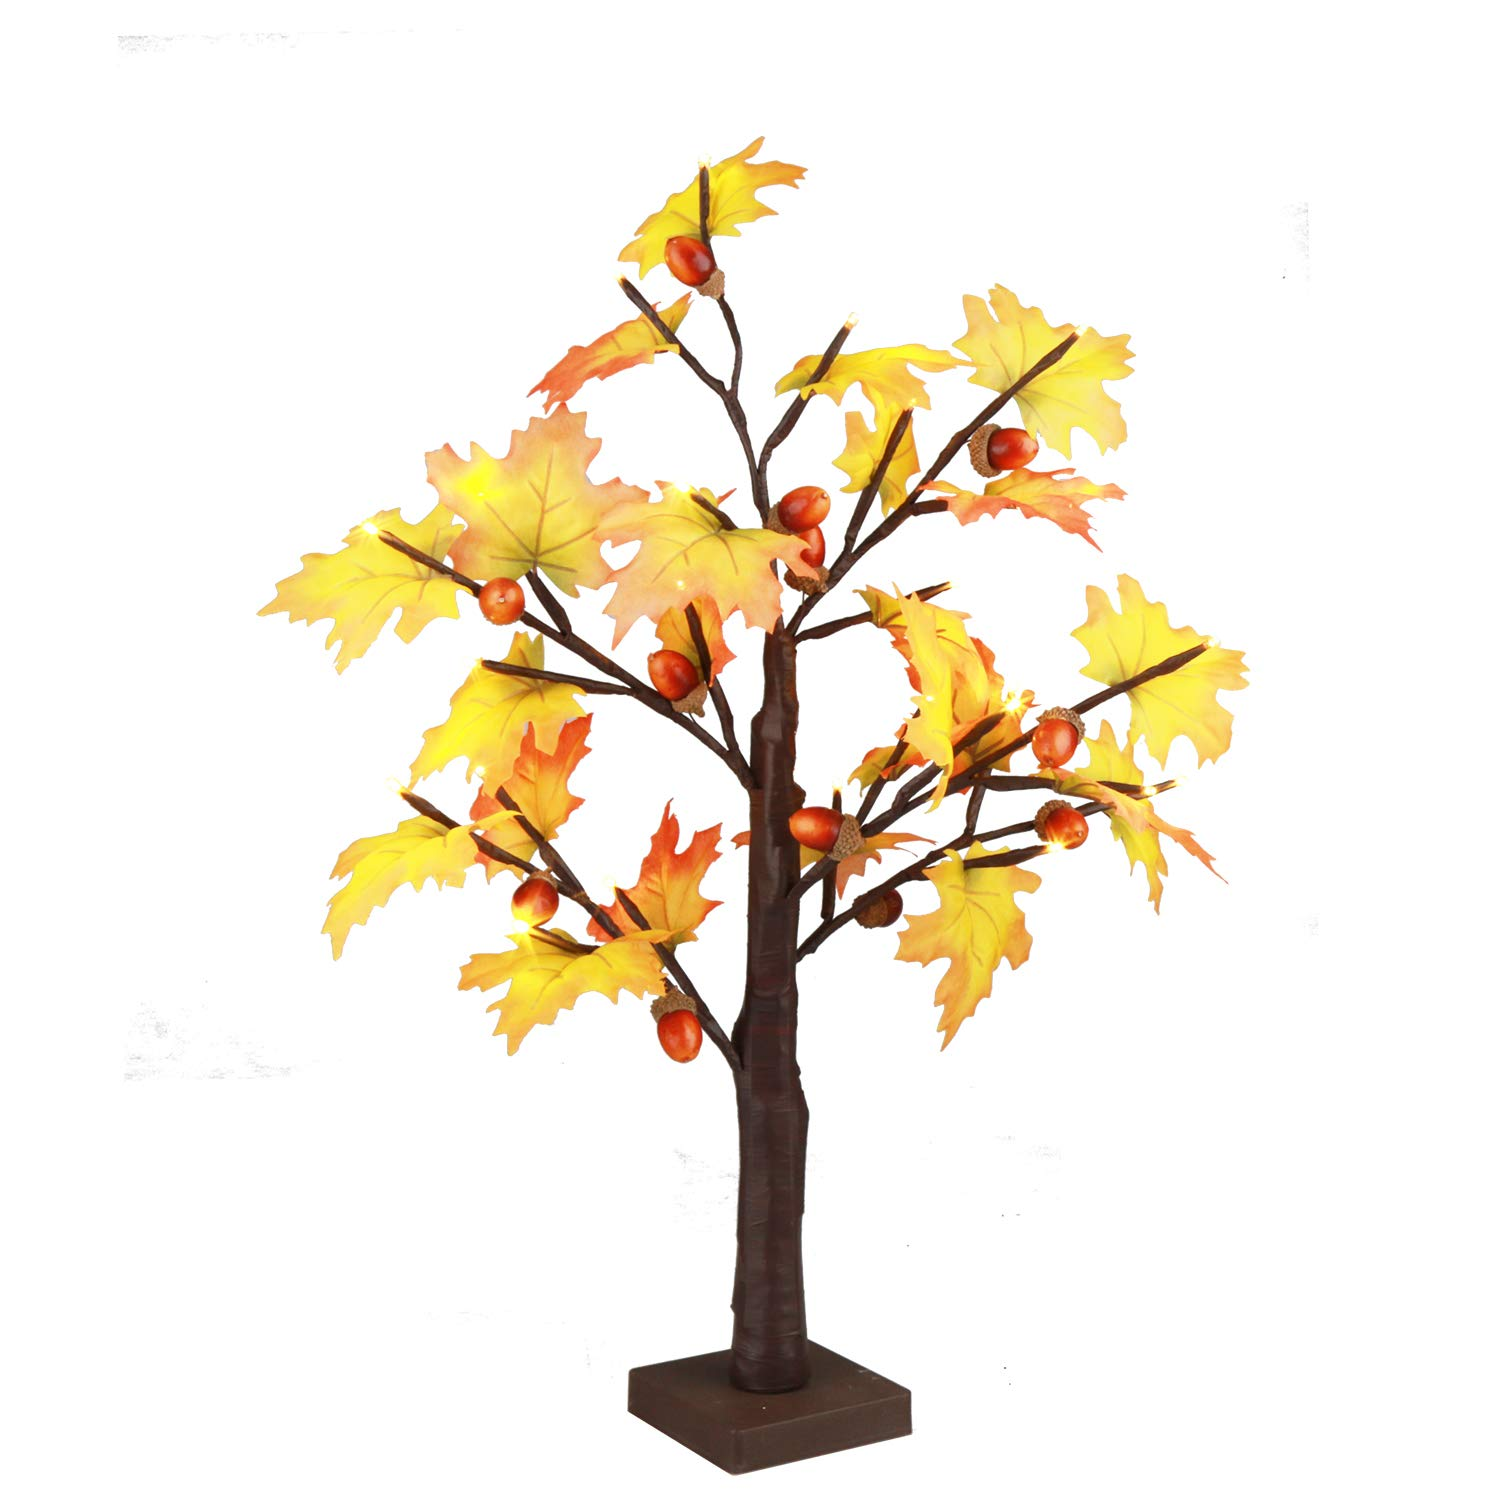 EAMBRITE 2FT 24LT led Fall Maple Tree Lighted Tabletop Tree Decorative Fall Thanksgiving Home Wedding Party